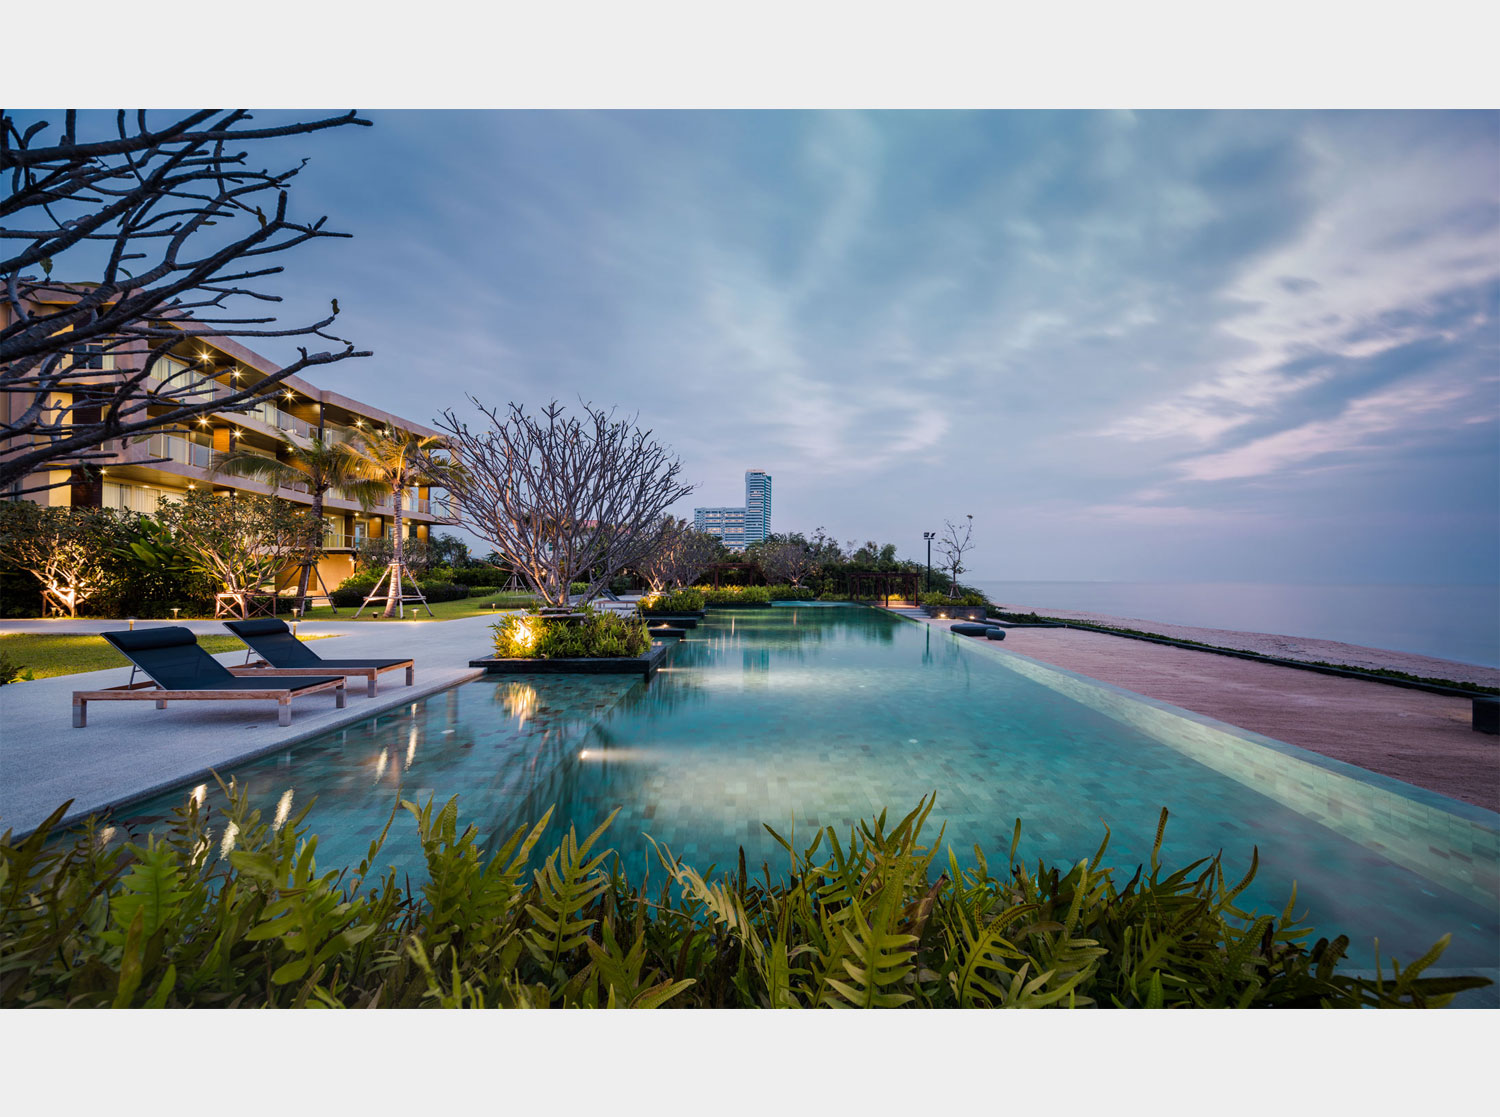 Condo Thewtalay Aquamarine ChaAm-HuaHin